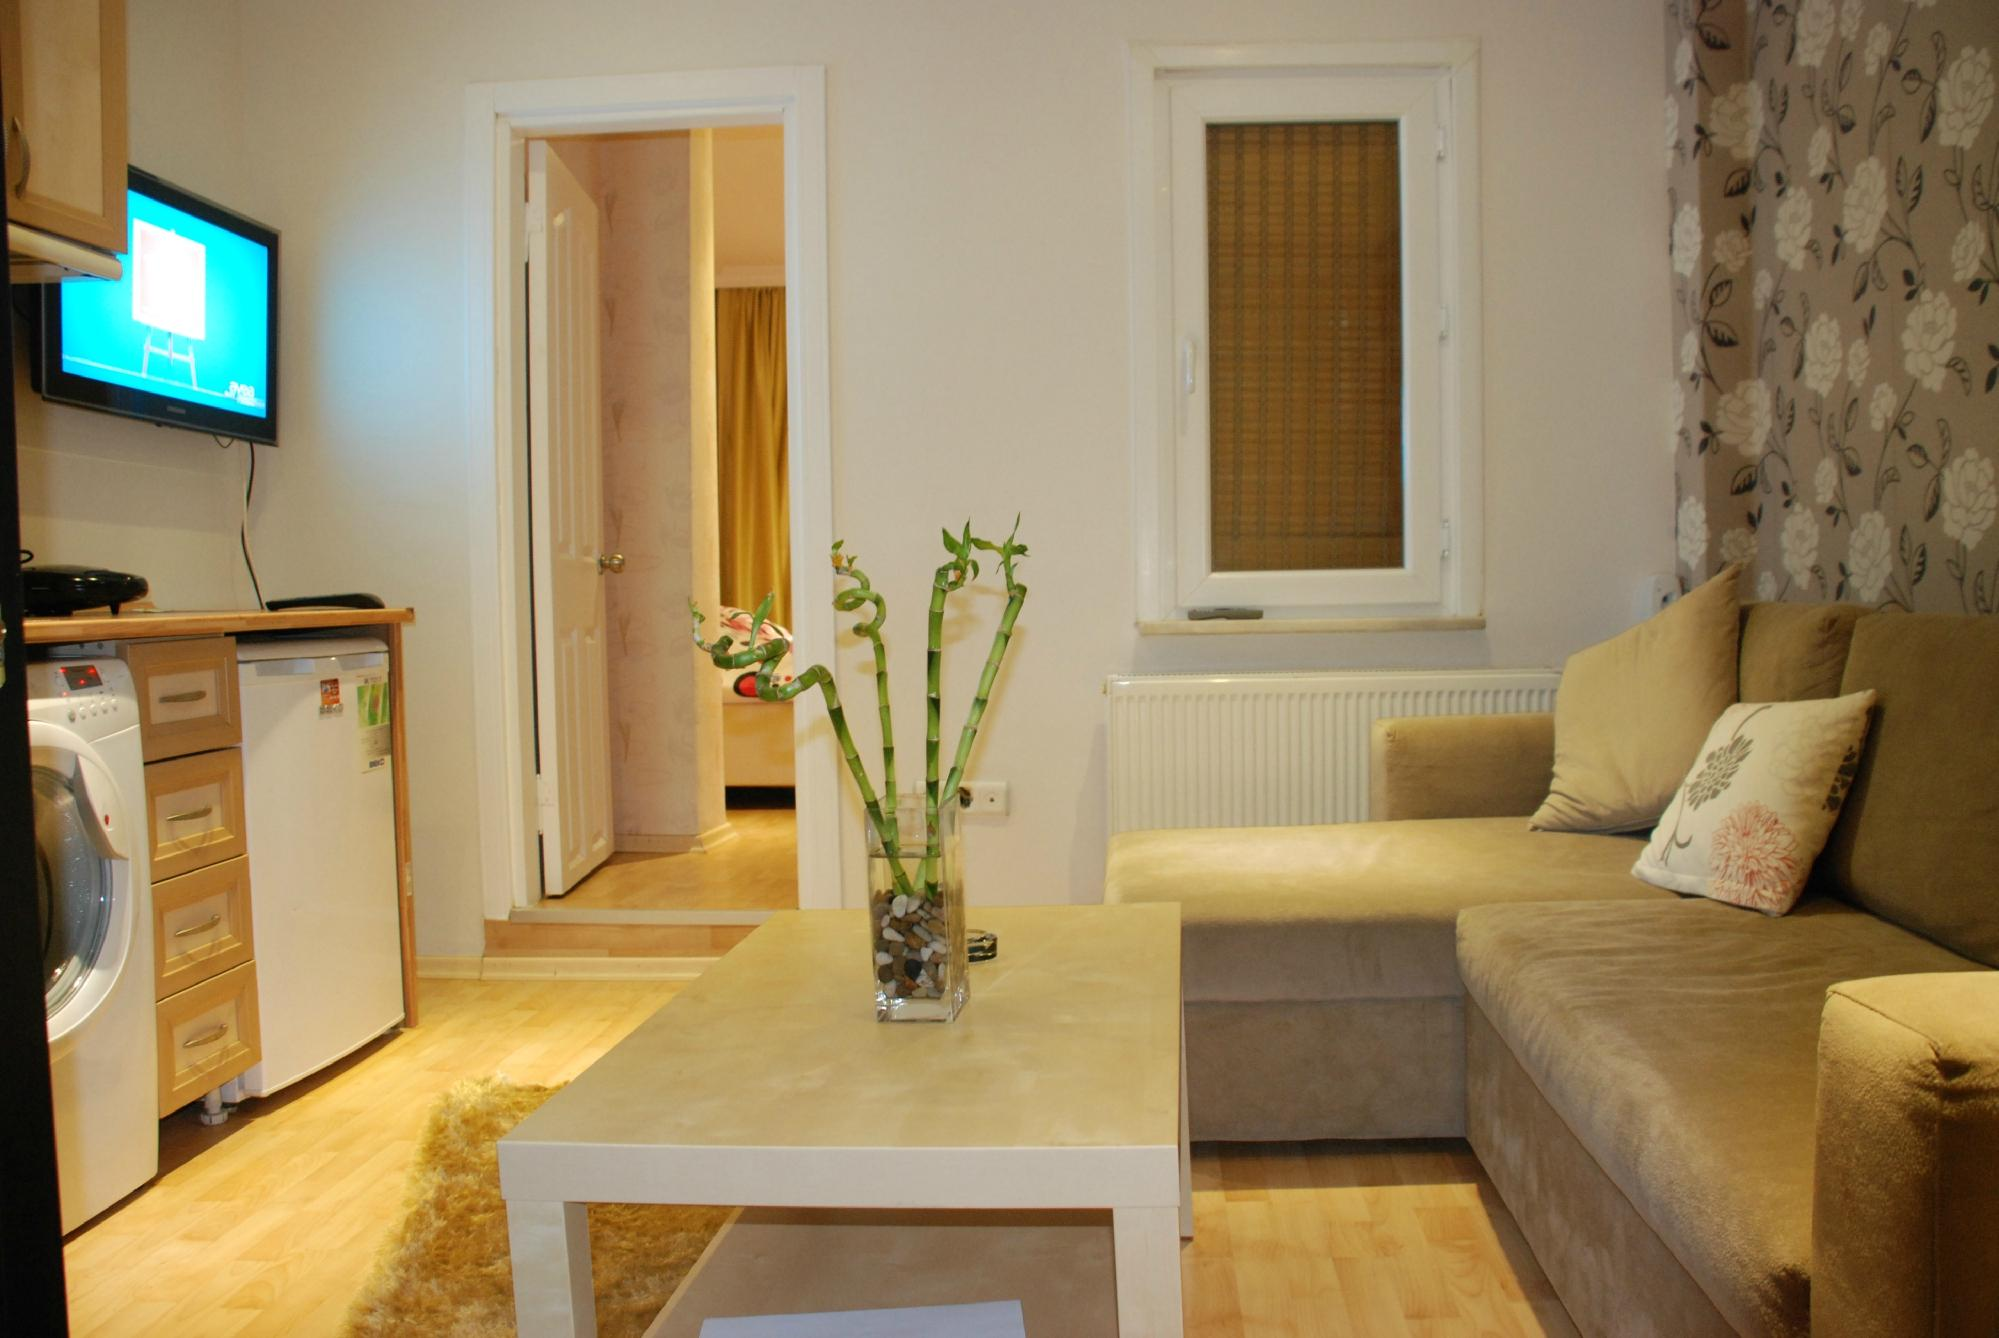 Taksim 9 Suites Apartments